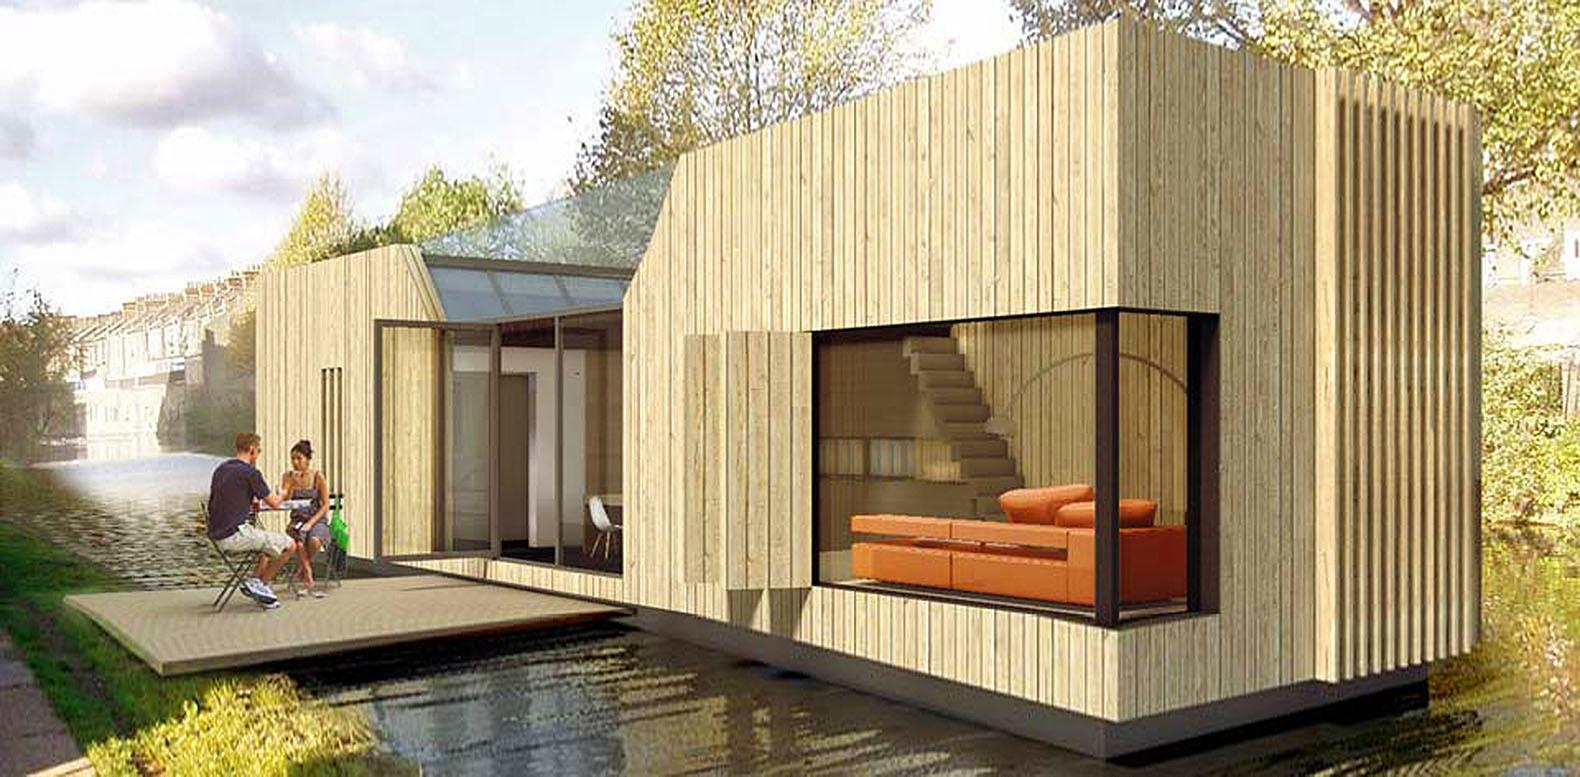 500 Affordable Floating Homes Could Help Fight London